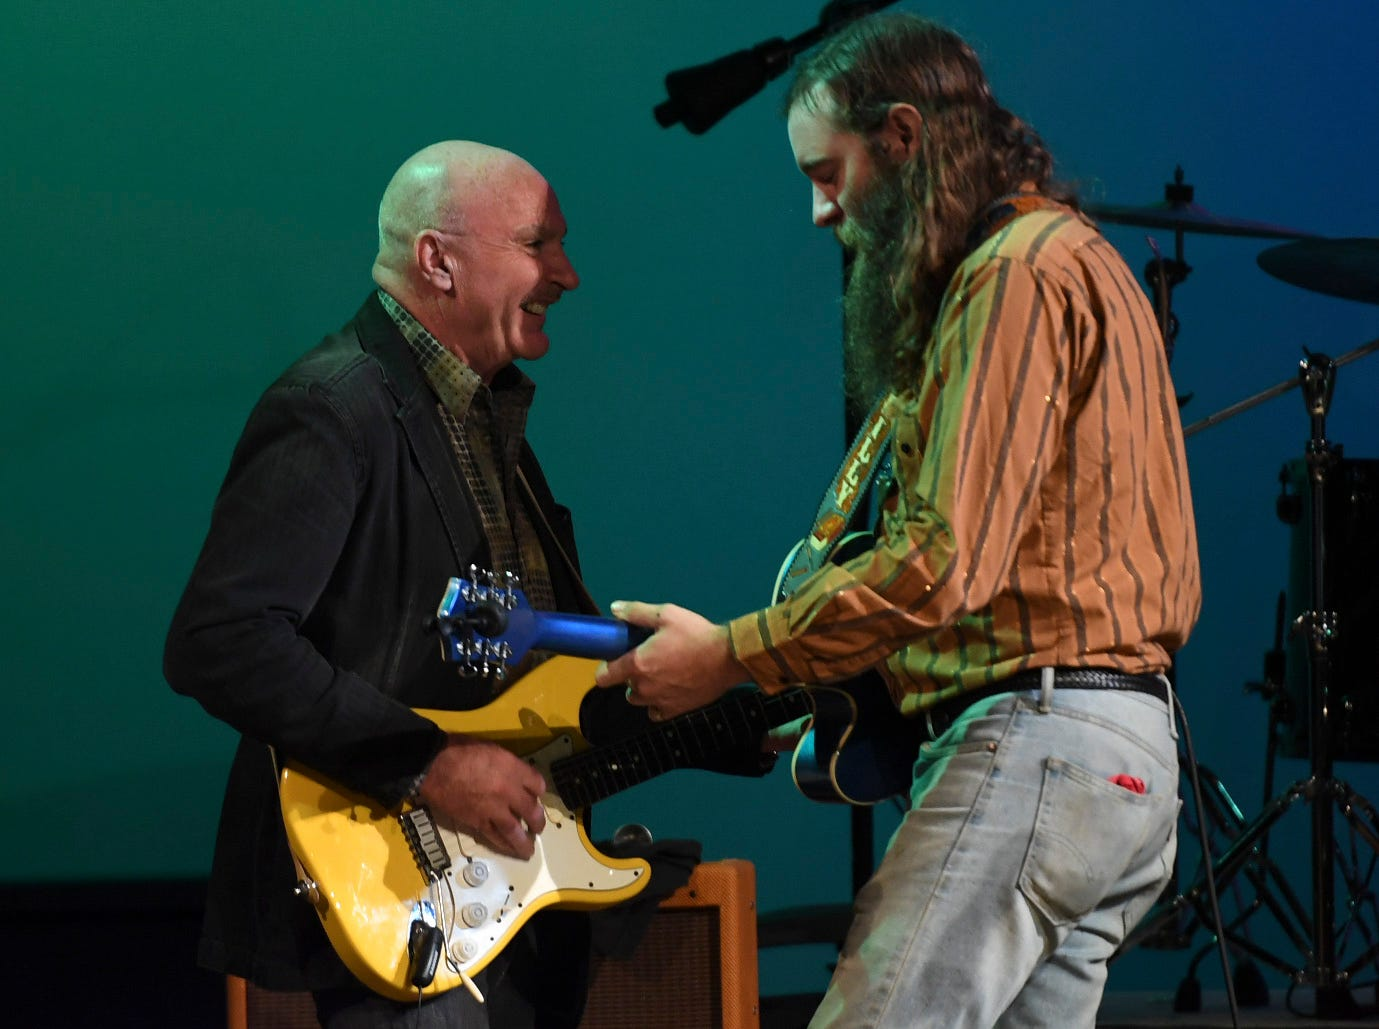 Wes Henley and Cotton Clifton perform at the 2nd Annual Tennessee Music Awards, Monday, October 8, at University of Memphis Lambuth.